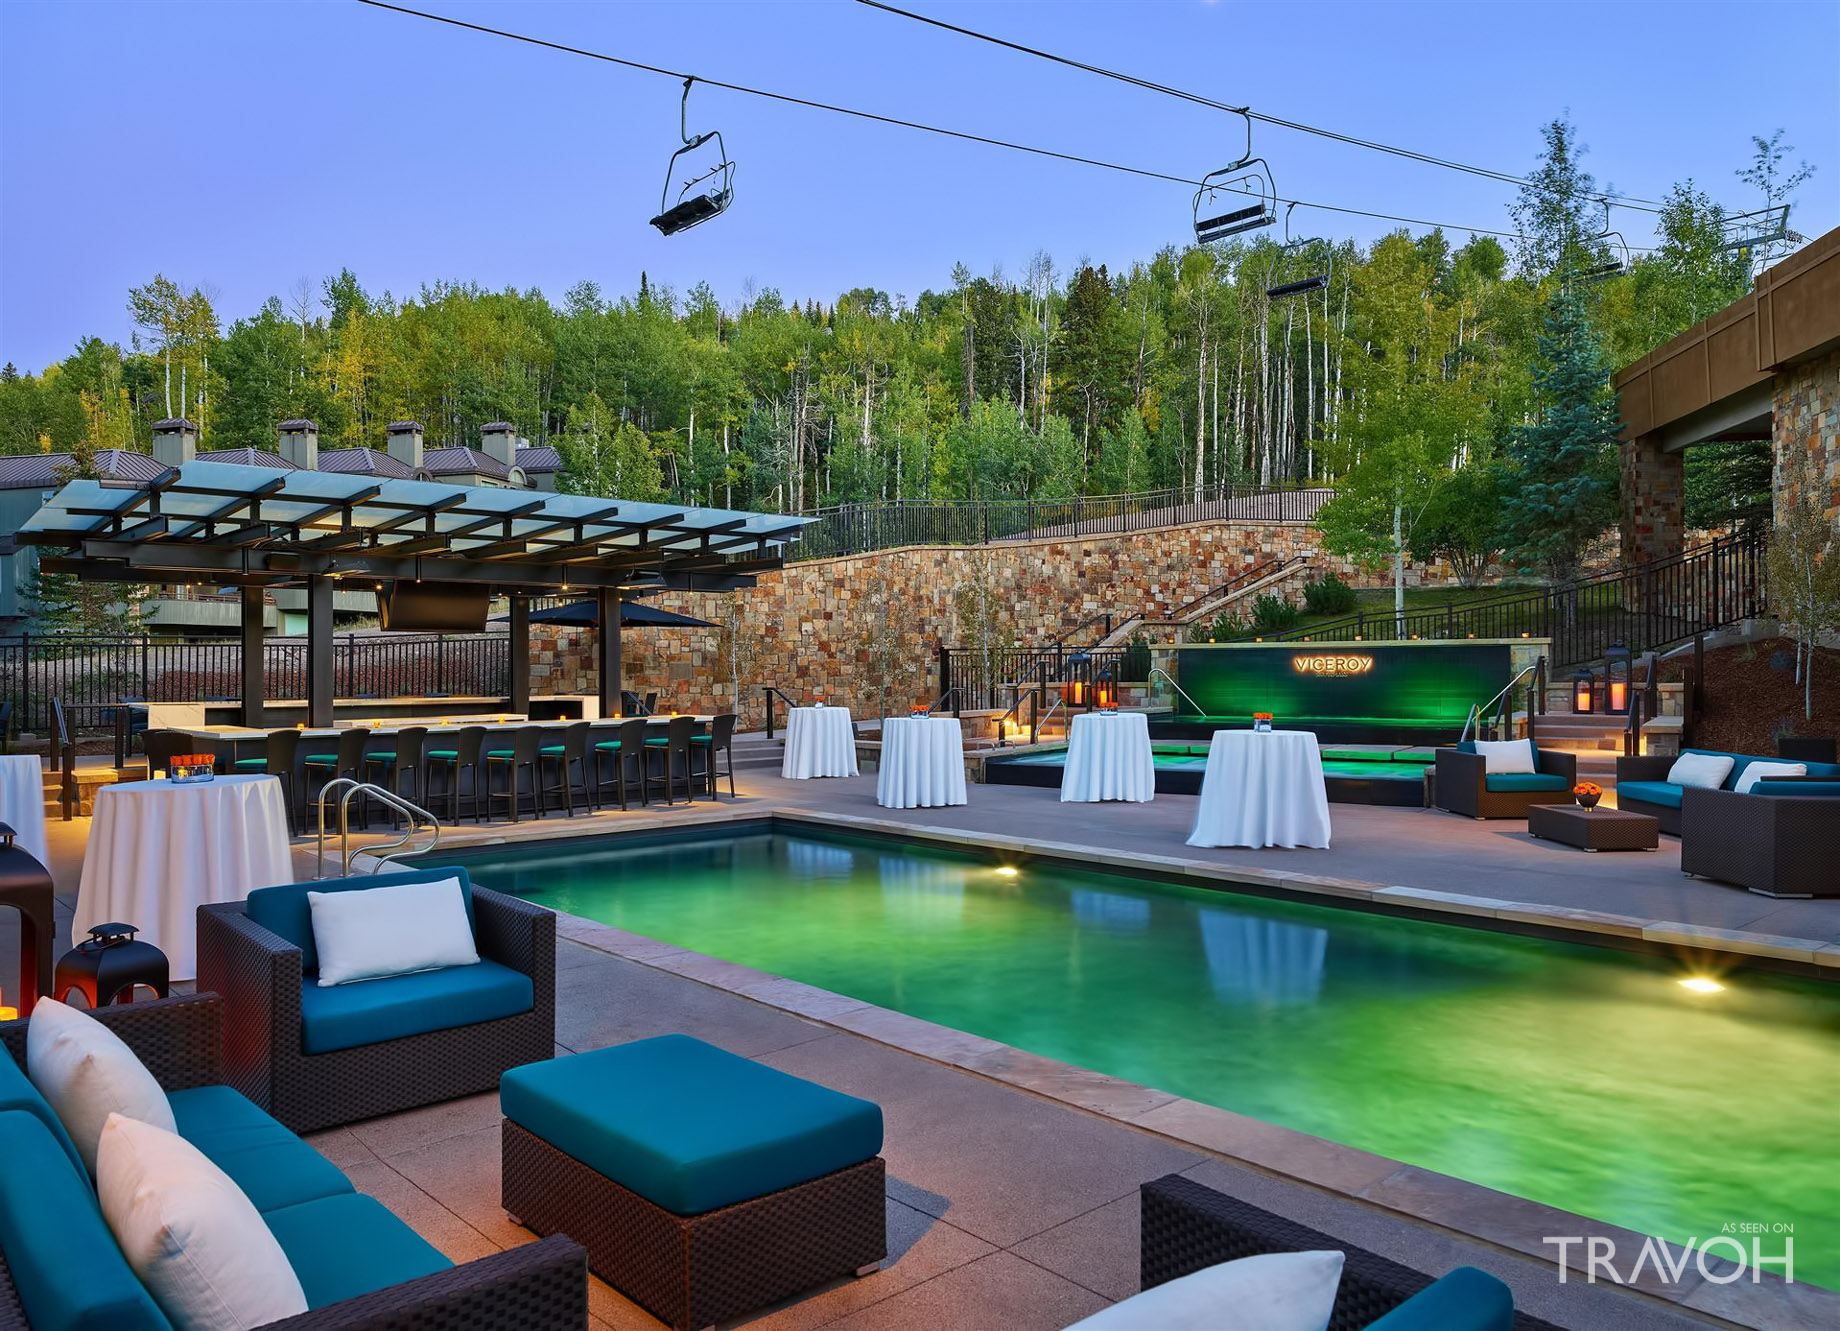 The Luxurious Spas - Top 7 Reasons Why You Should Vacation in Aspen, Colorado